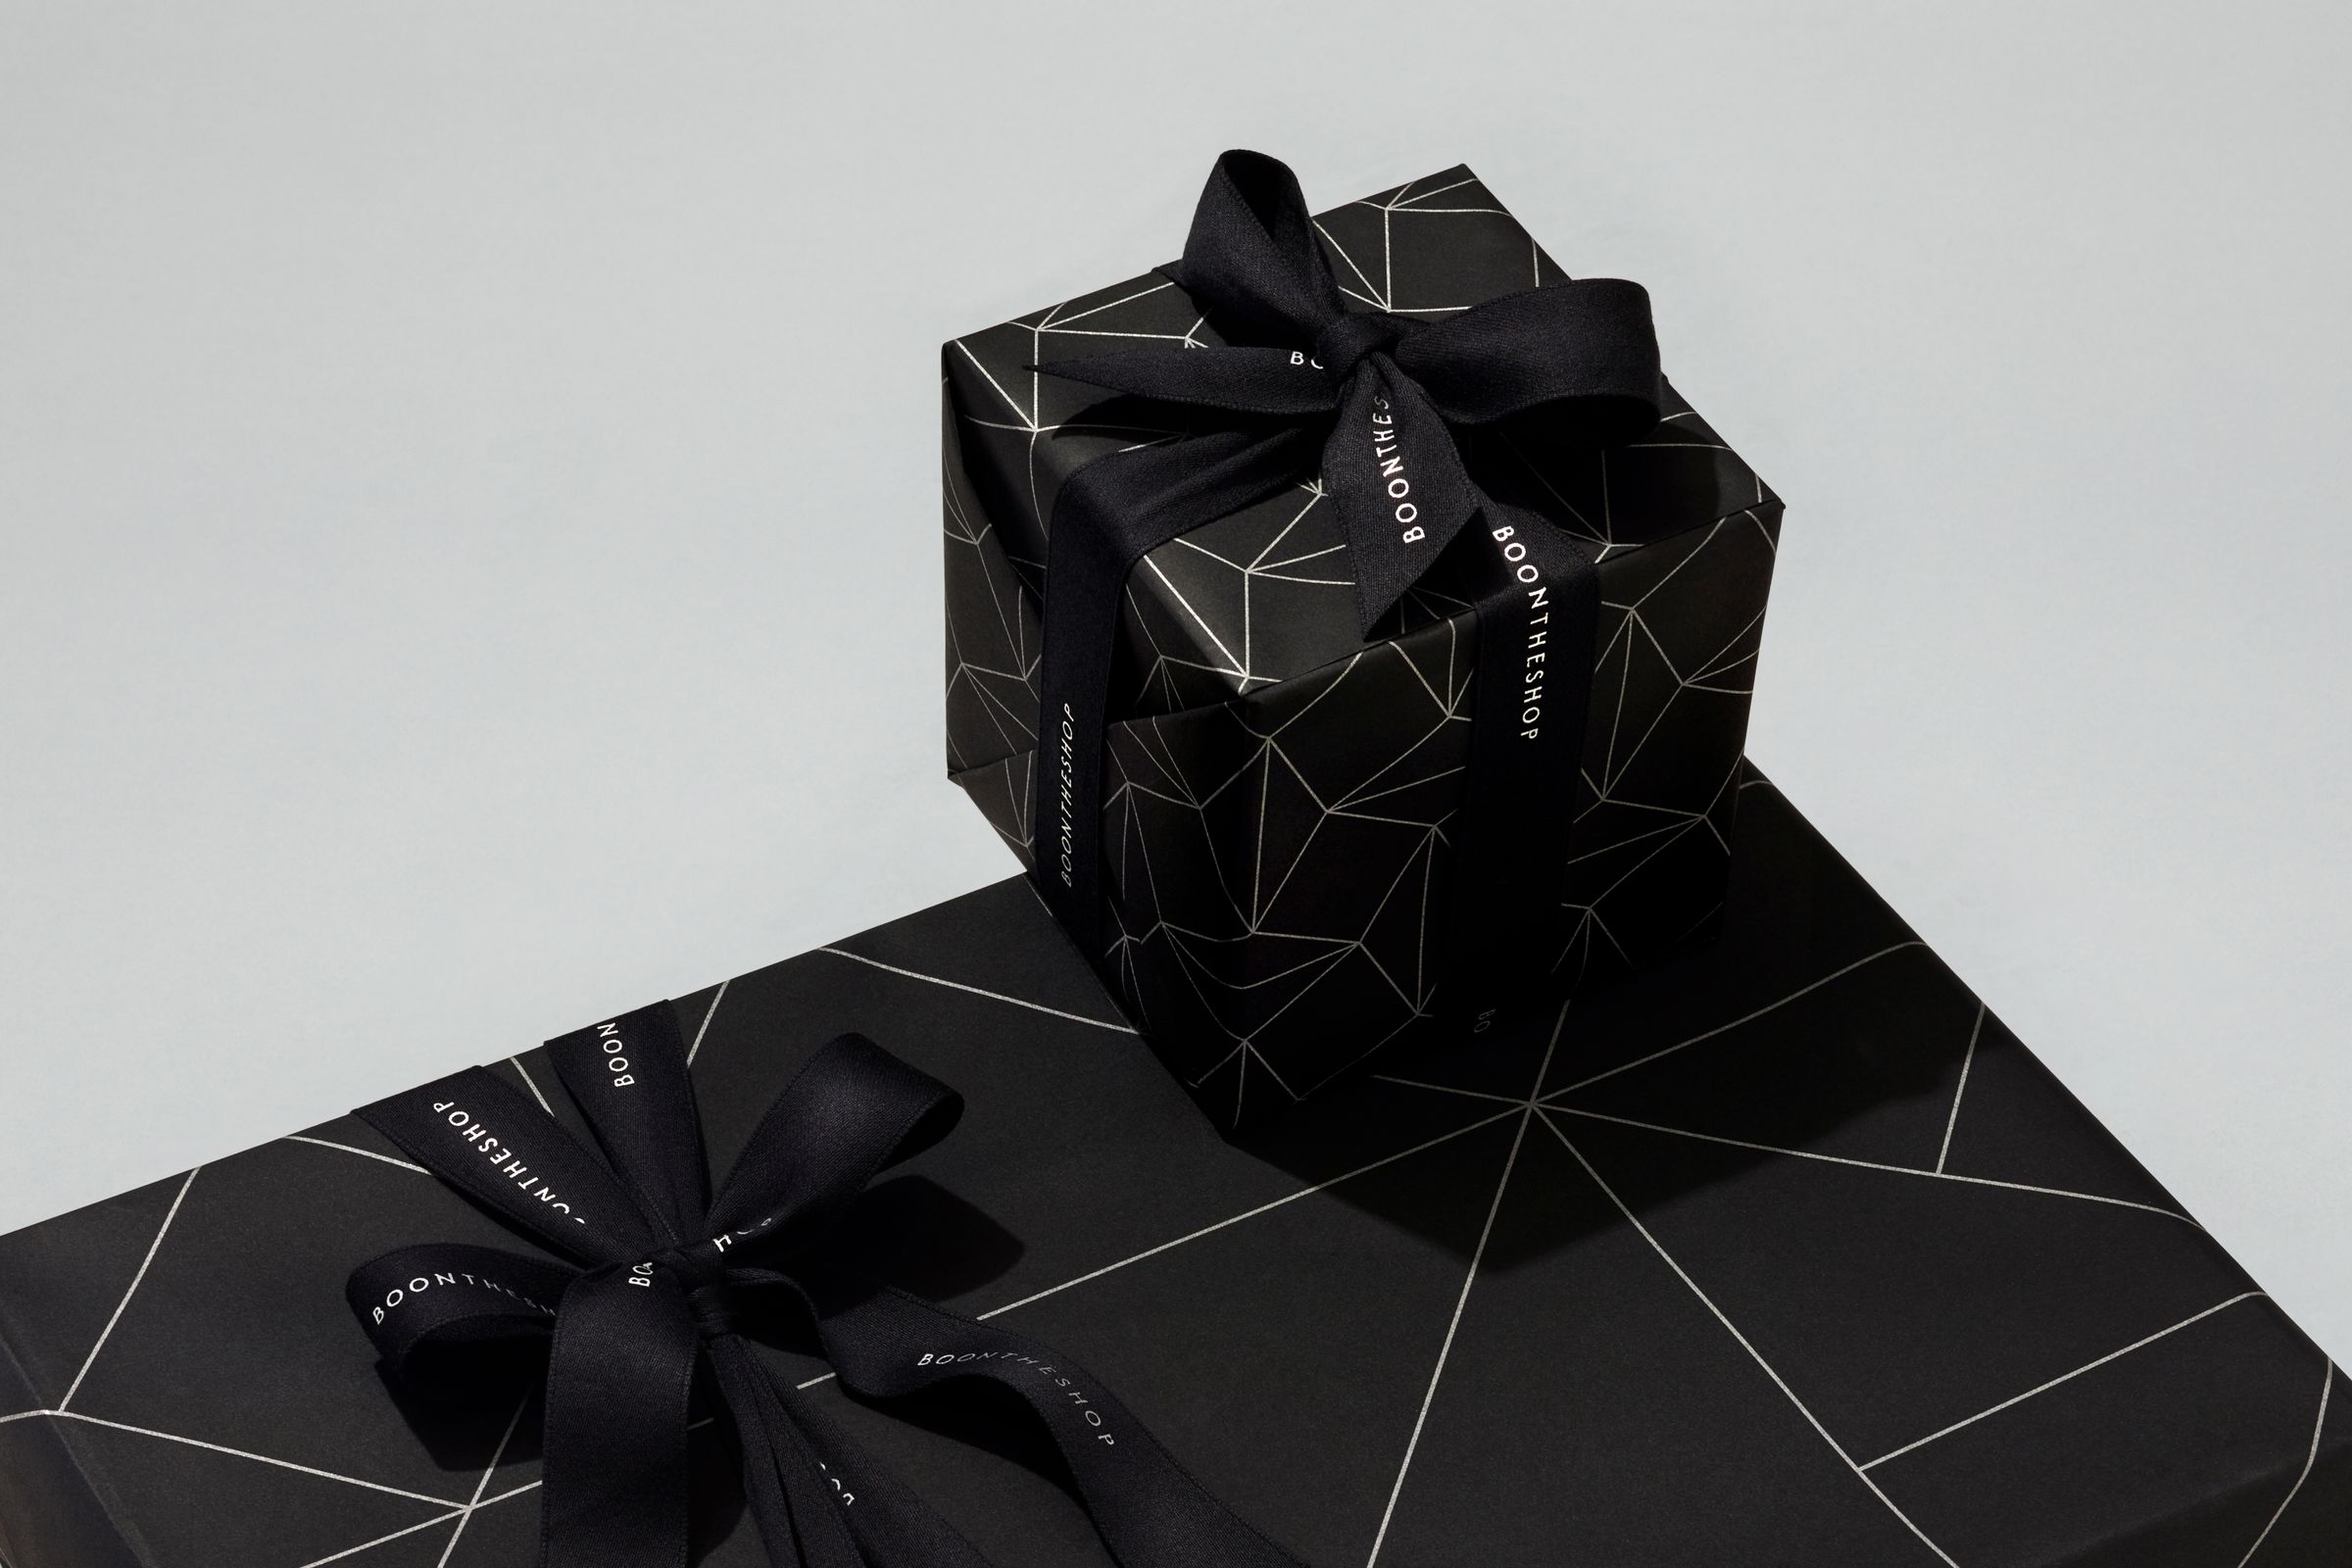 BOONTHESHOP gift packaging design